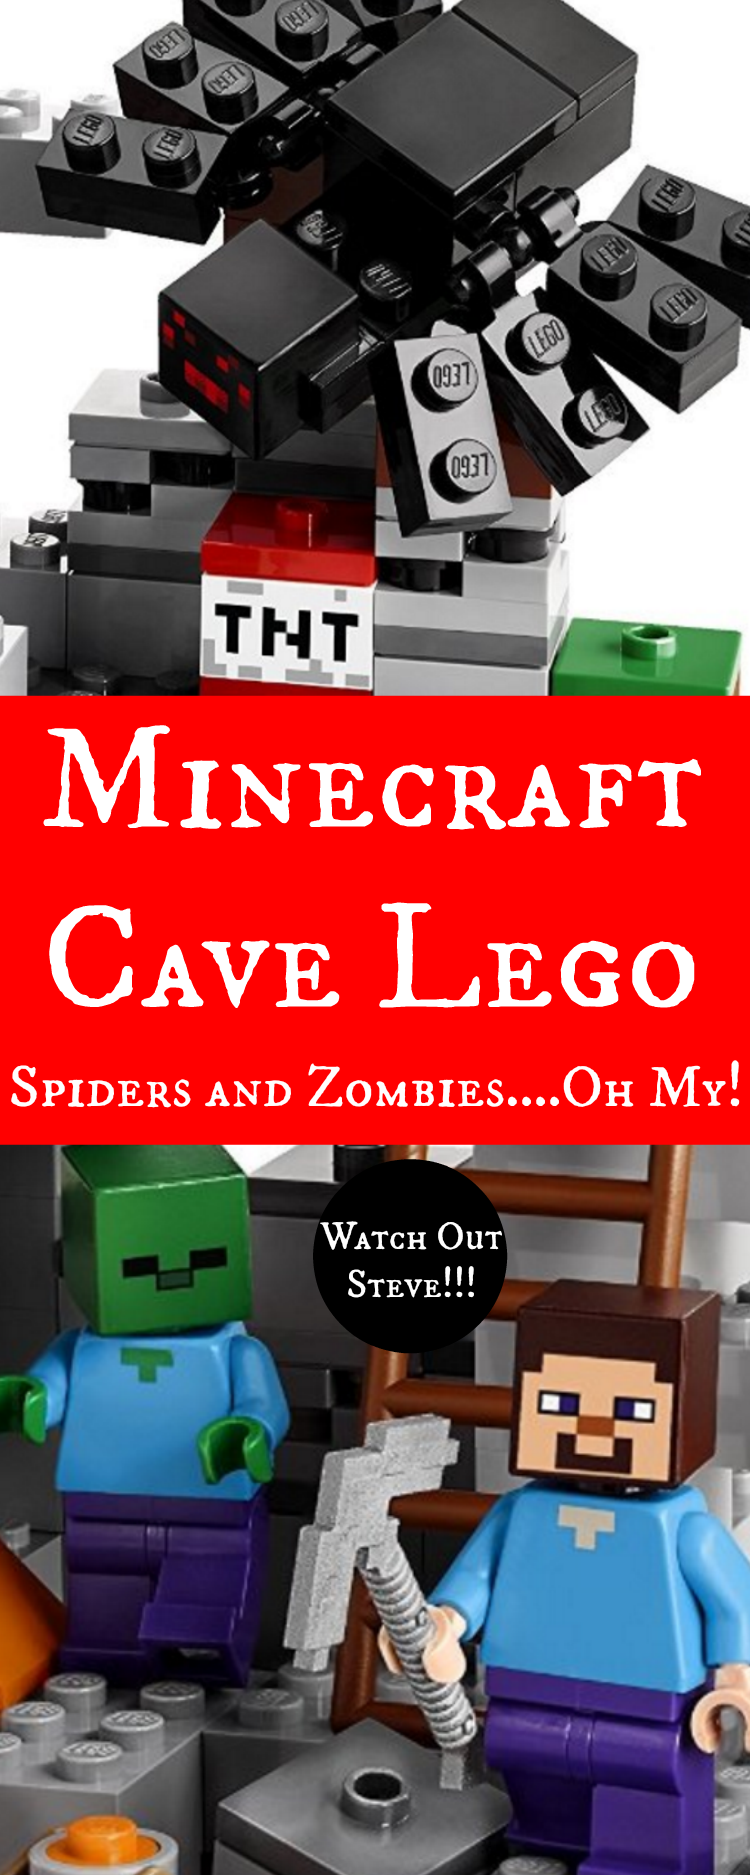 Minecraft Cave Lego - Spiders and Zombies....Oh My!